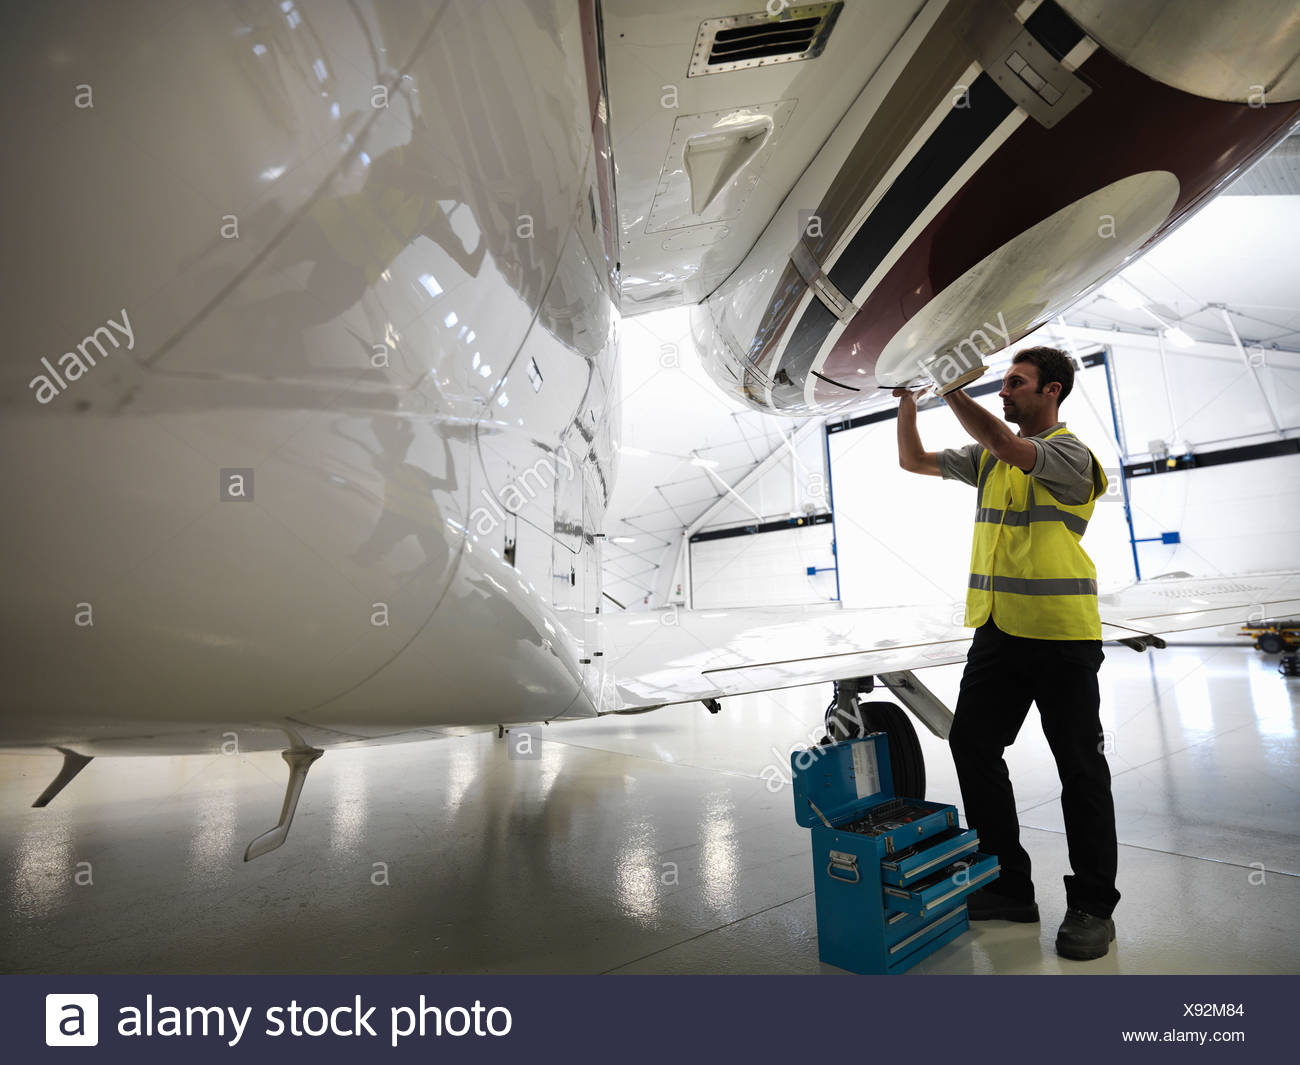 Engineer working on jet aircraft - Stock Image